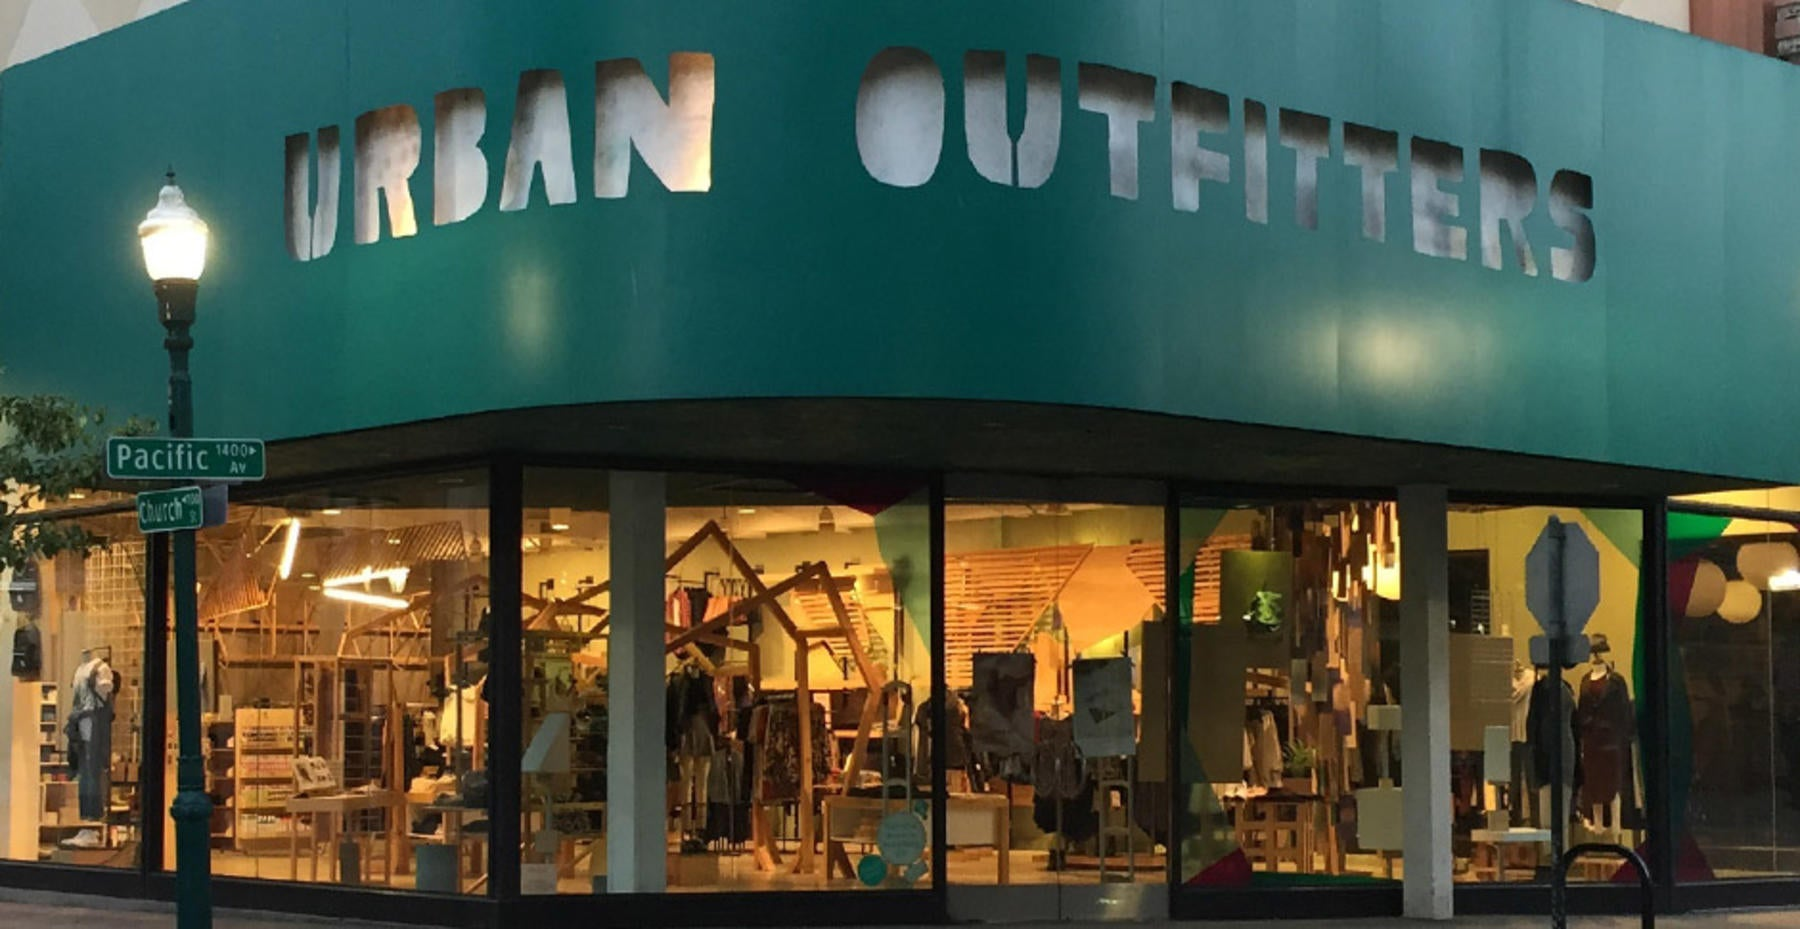 Urbn Outfitters